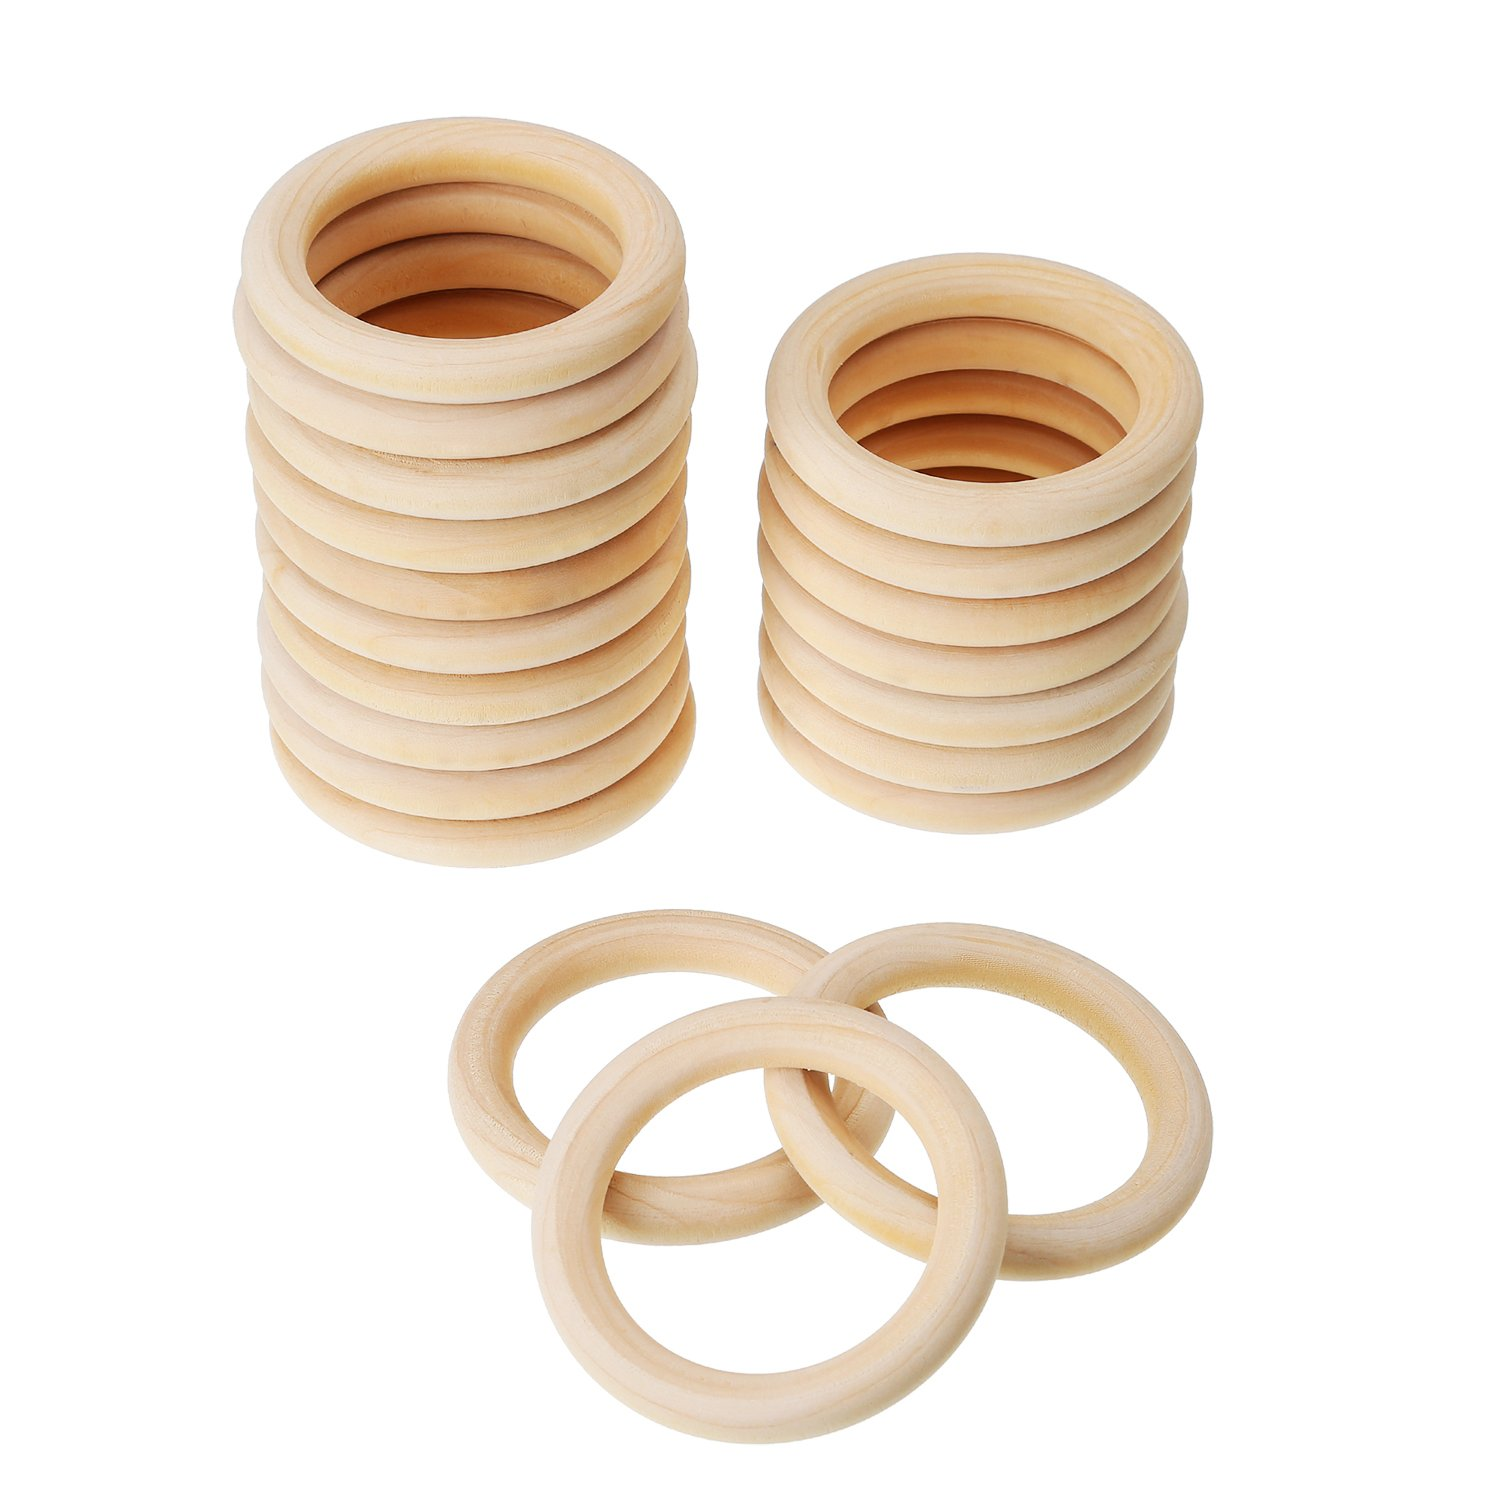 eBoot 20 Pack Wood Rings Wooden Rings for Craft, Ring Pendant and Connectors Jewelry Making (70 mm)